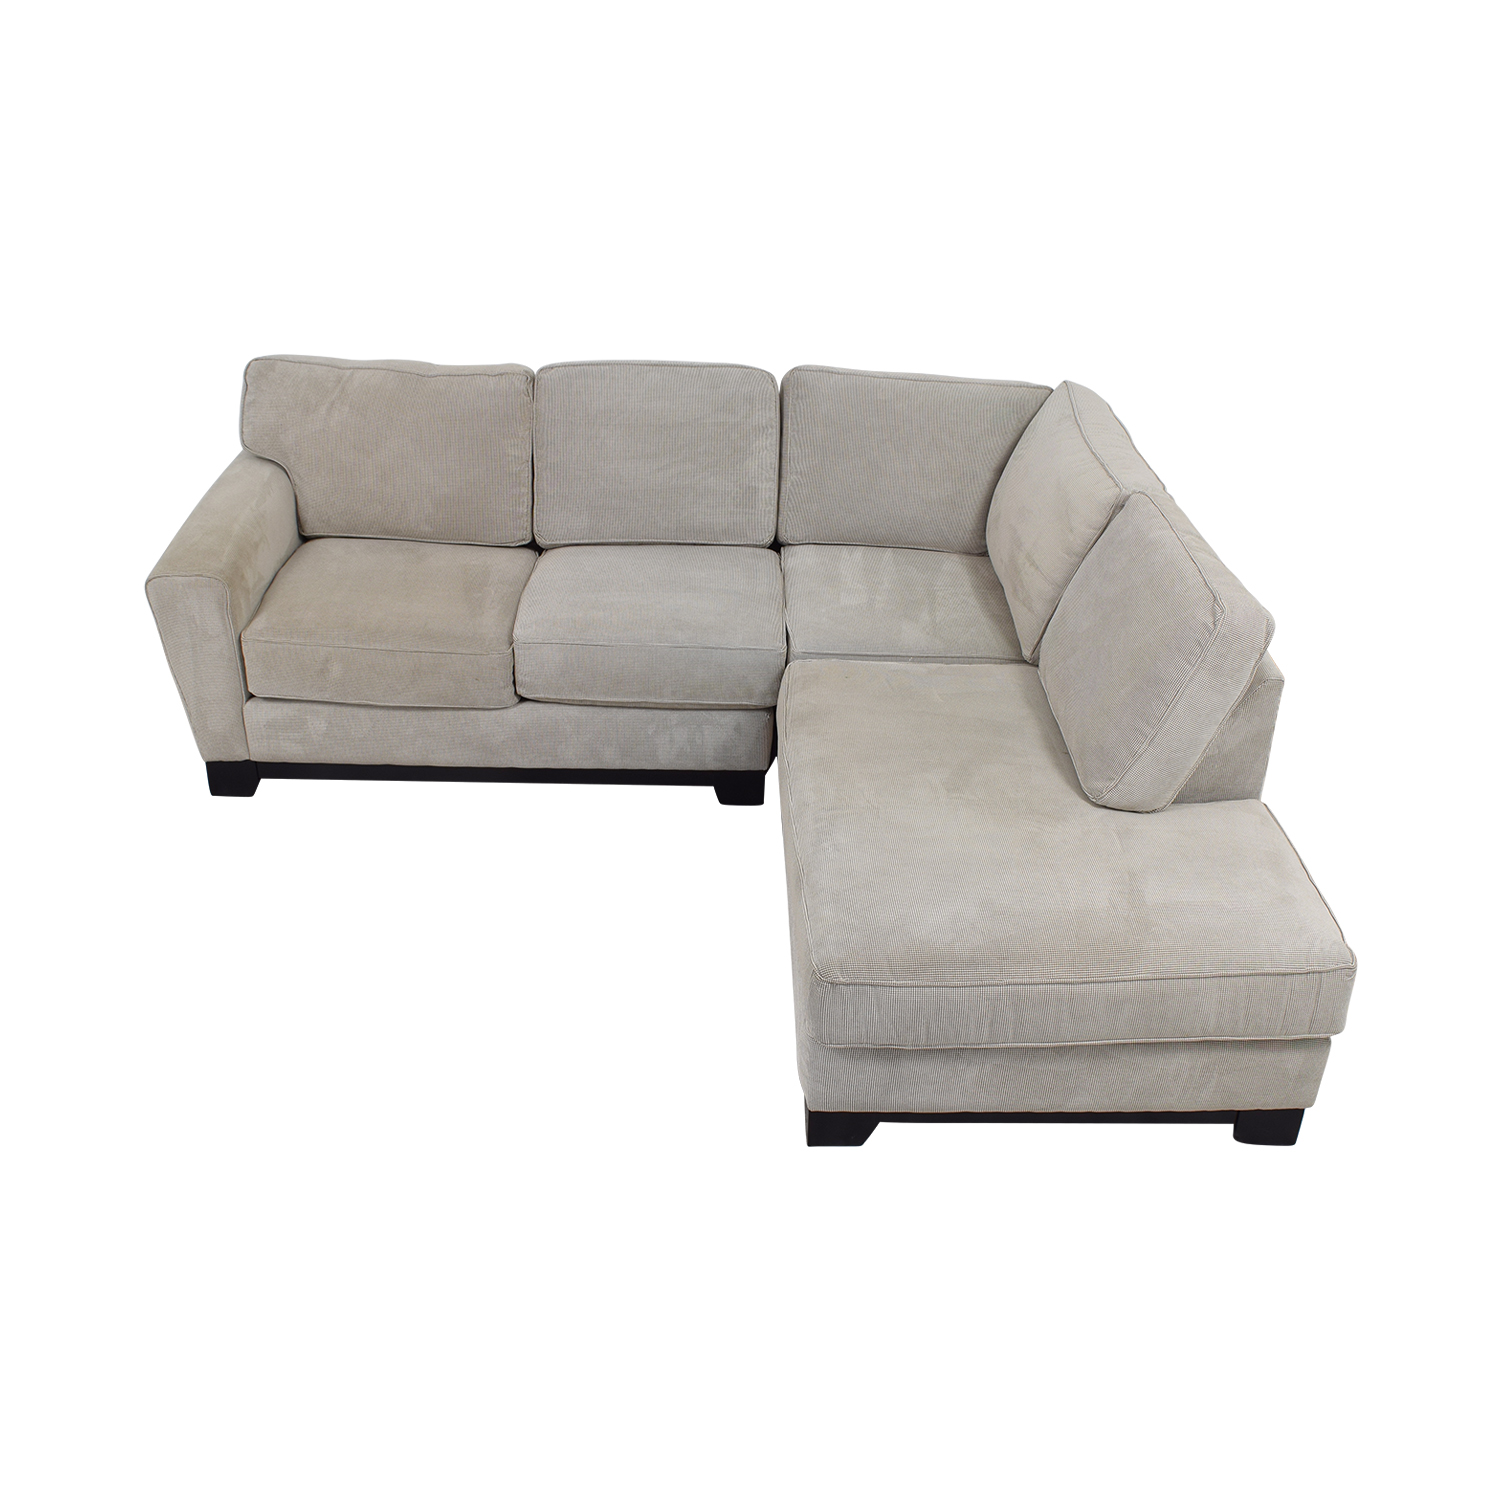 Jordans Furniture Beige L-Shaped Sectional Jordans Furniture